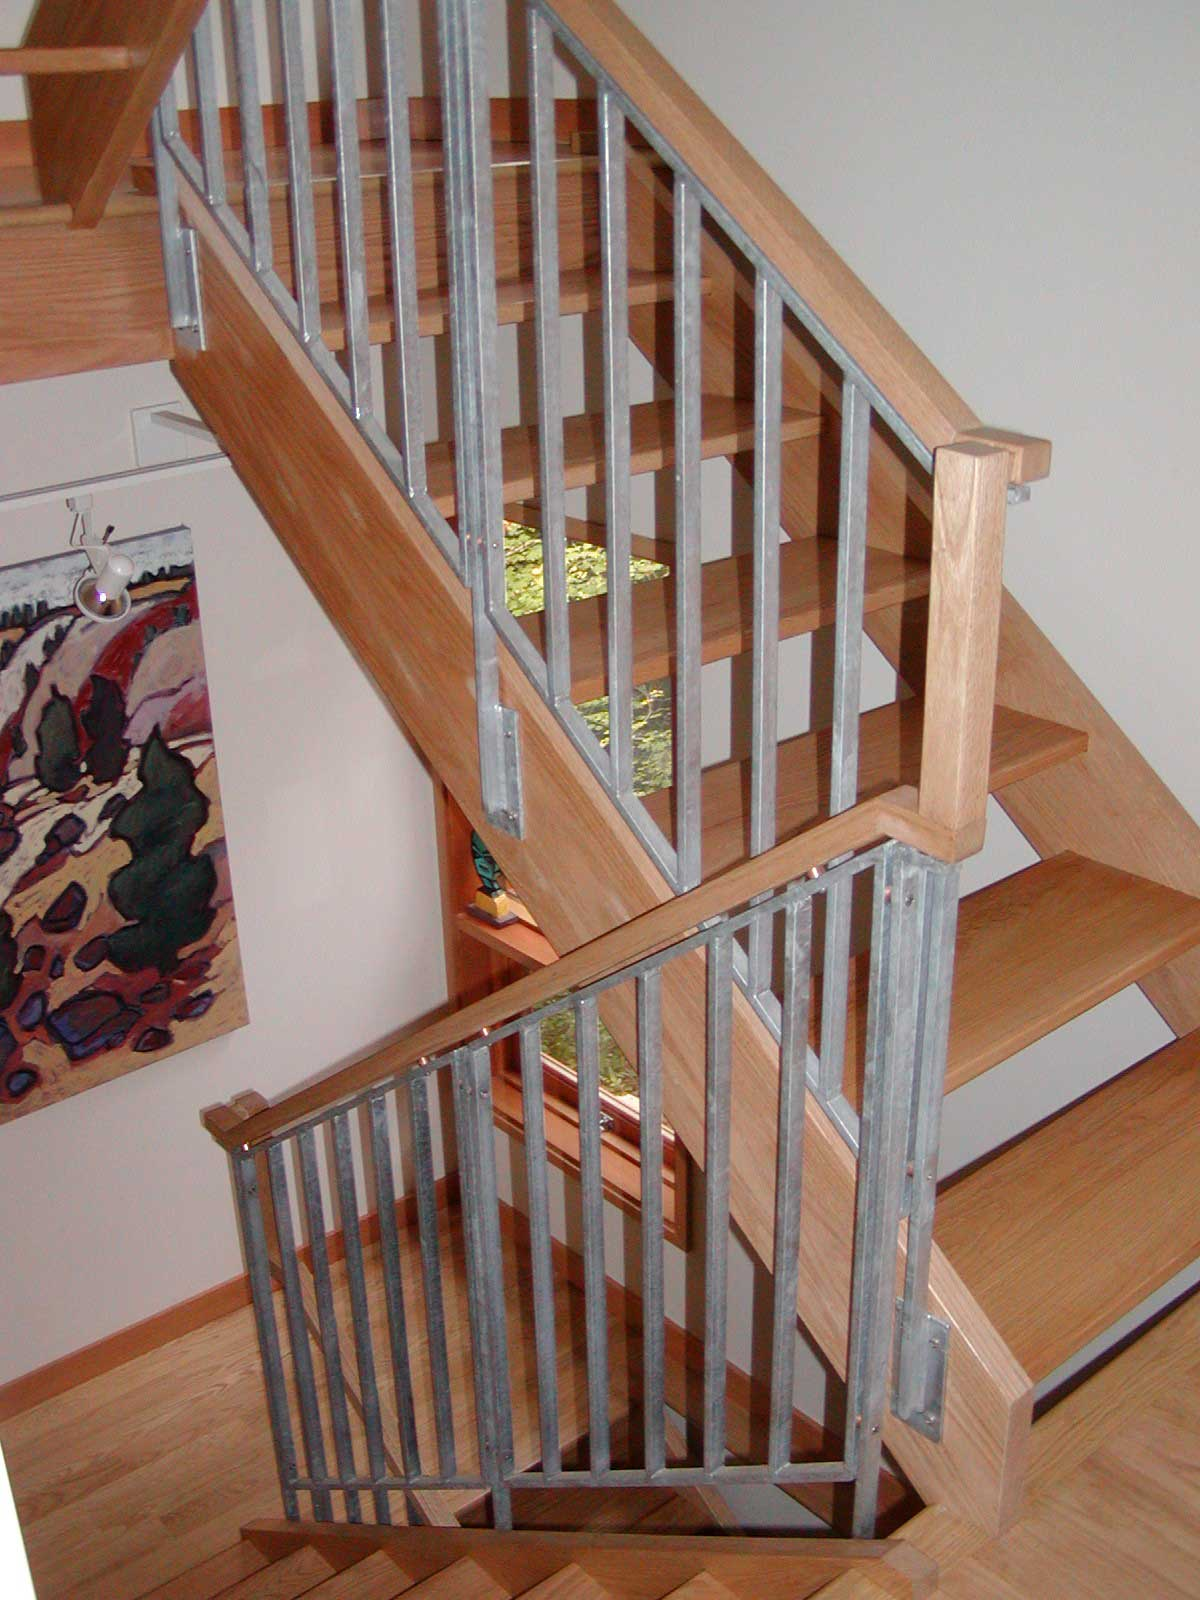 Wood stair railings interior kris allen daily - Interior stair railing contractors ...